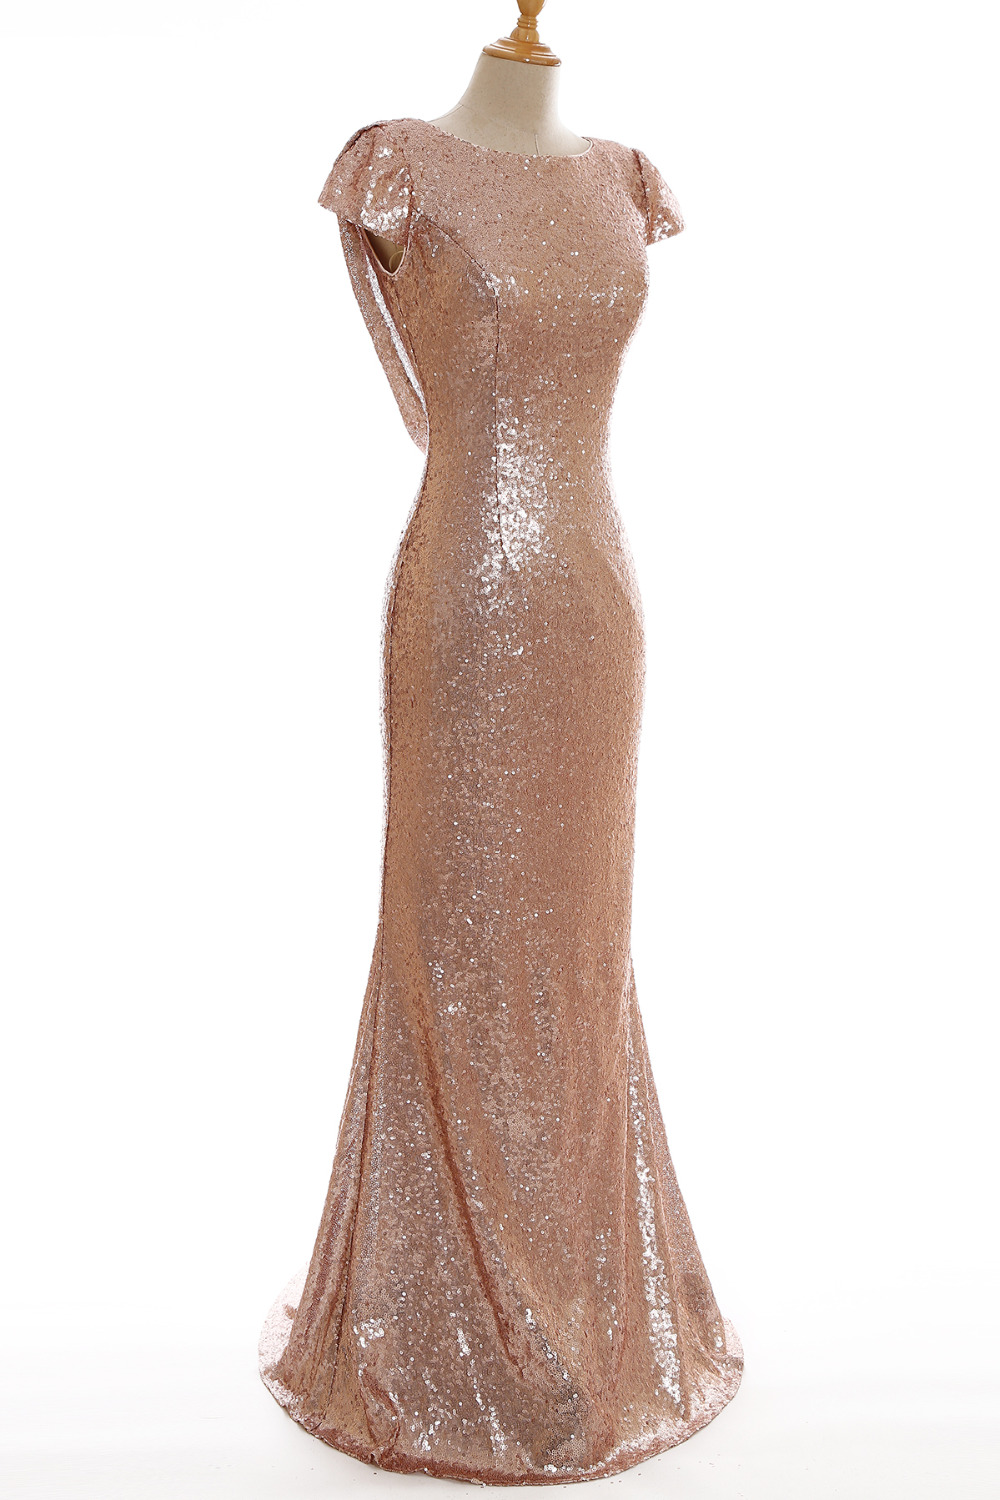 Aliexpress.com : Buy Cheap Real Image Rose Gold Sequin Dress to ...